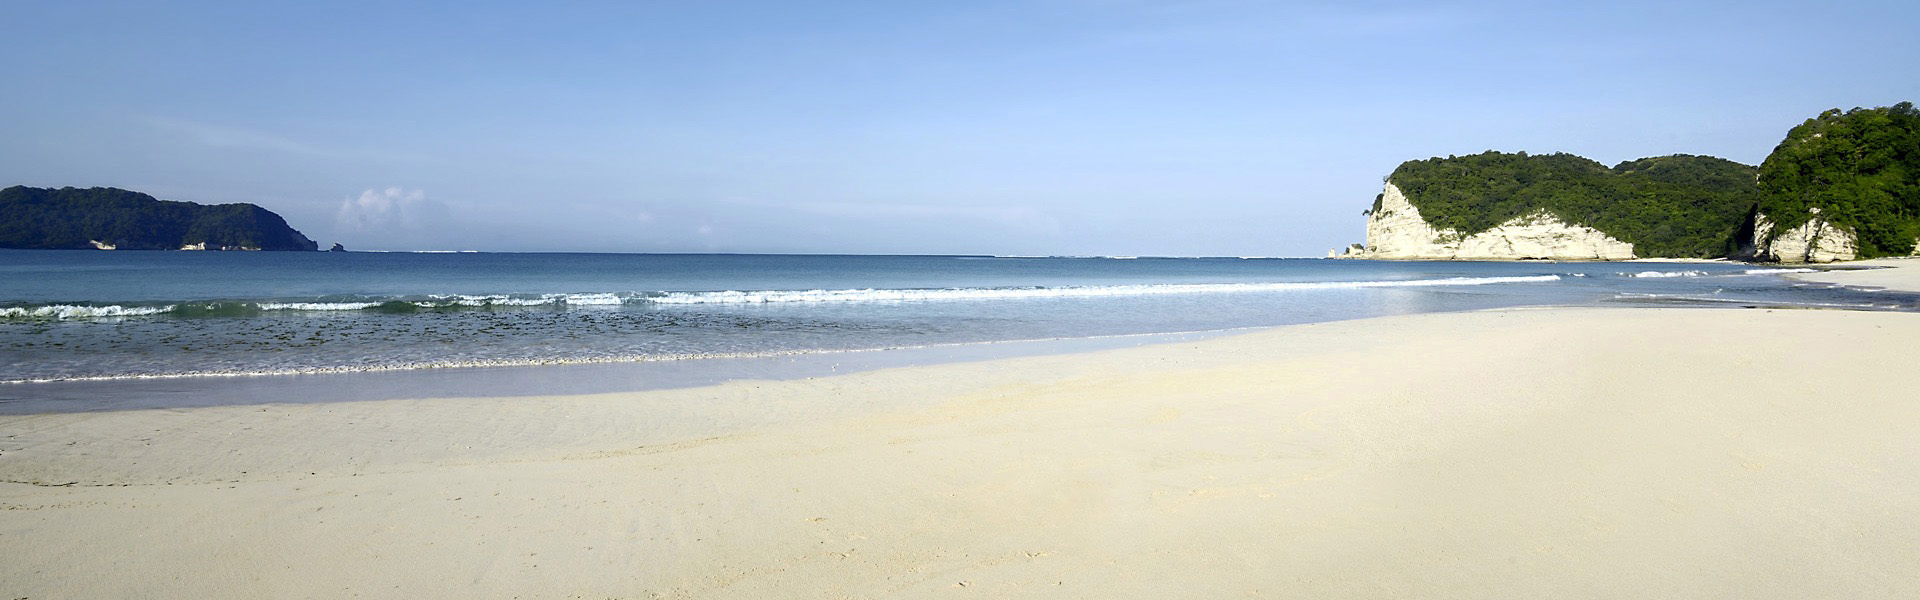 Beautiful Tarimbang Beach, Sumba Indonesia